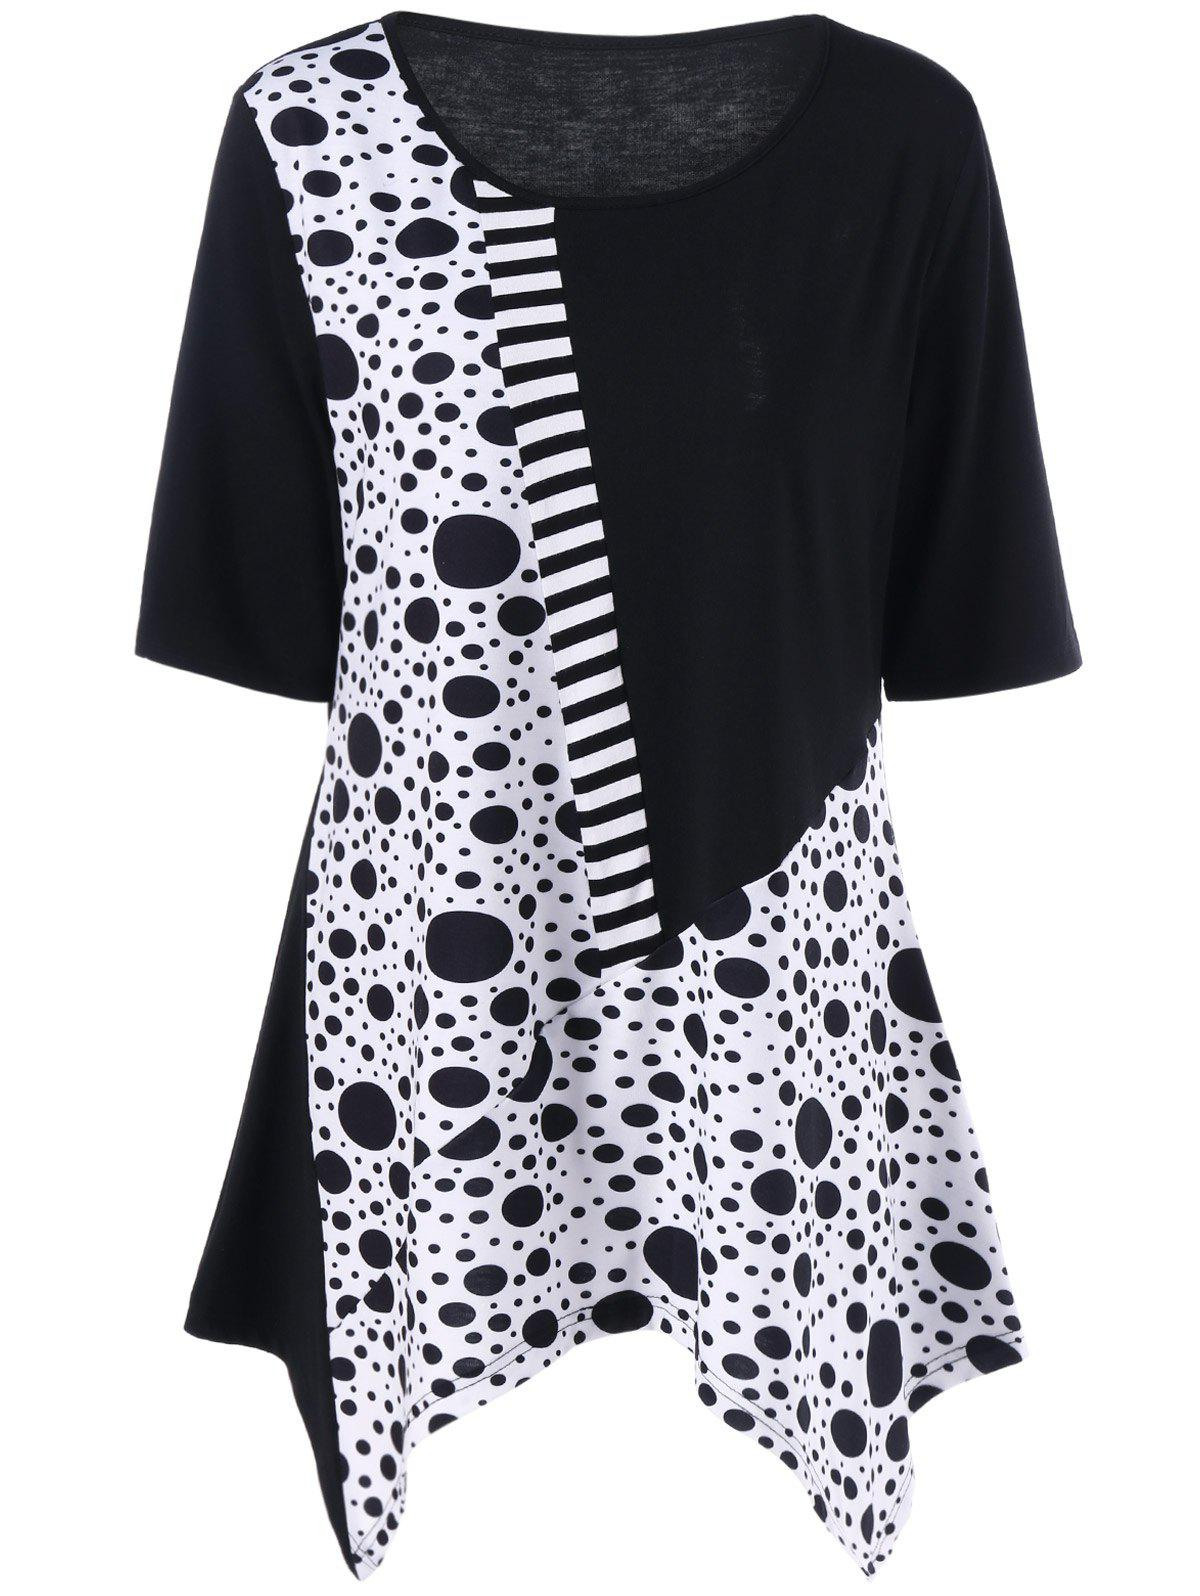 Plus Size Polka Dot Panel Asymmetric T-ShirtWOMEN<br><br>Size: 4XL; Color: WHITE AND BLACK; Material: Polyester,Spandex; Shirt Length: Long; Sleeve Length: Short; Collar: Scoop Neck; Style: Casual; Season: Summer; Pattern Type: Polka Dot; Weight: 0.3200kg; Package Contents: 1 x T-Shirt;